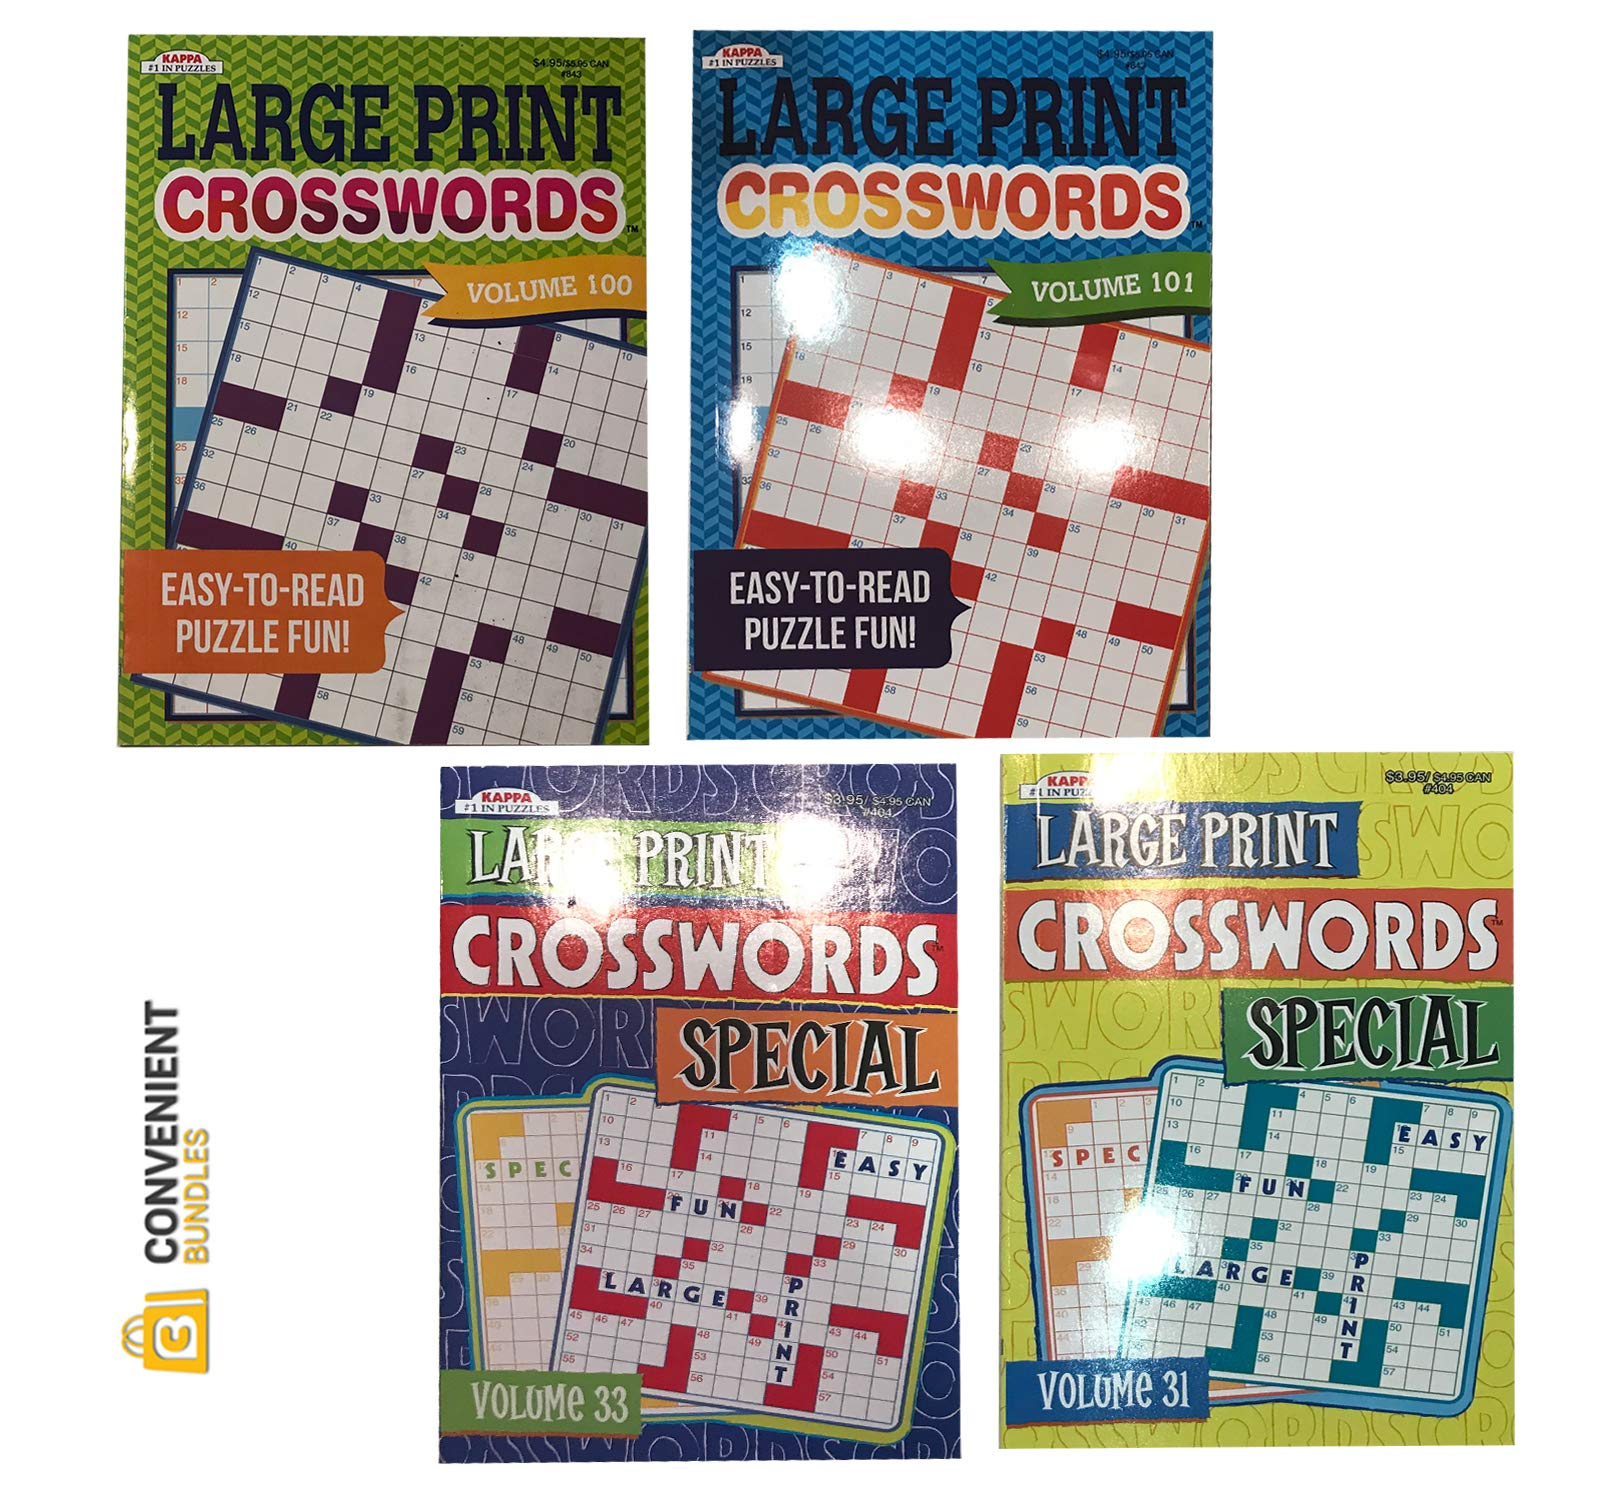 Convenient Bundles Large Print Crossword Puzzles for Adults (4 Books) 80 Challenging Mental Strategy Games for Men, Women | Home and Travel Use | Minimize Eye Fatigue, Strain